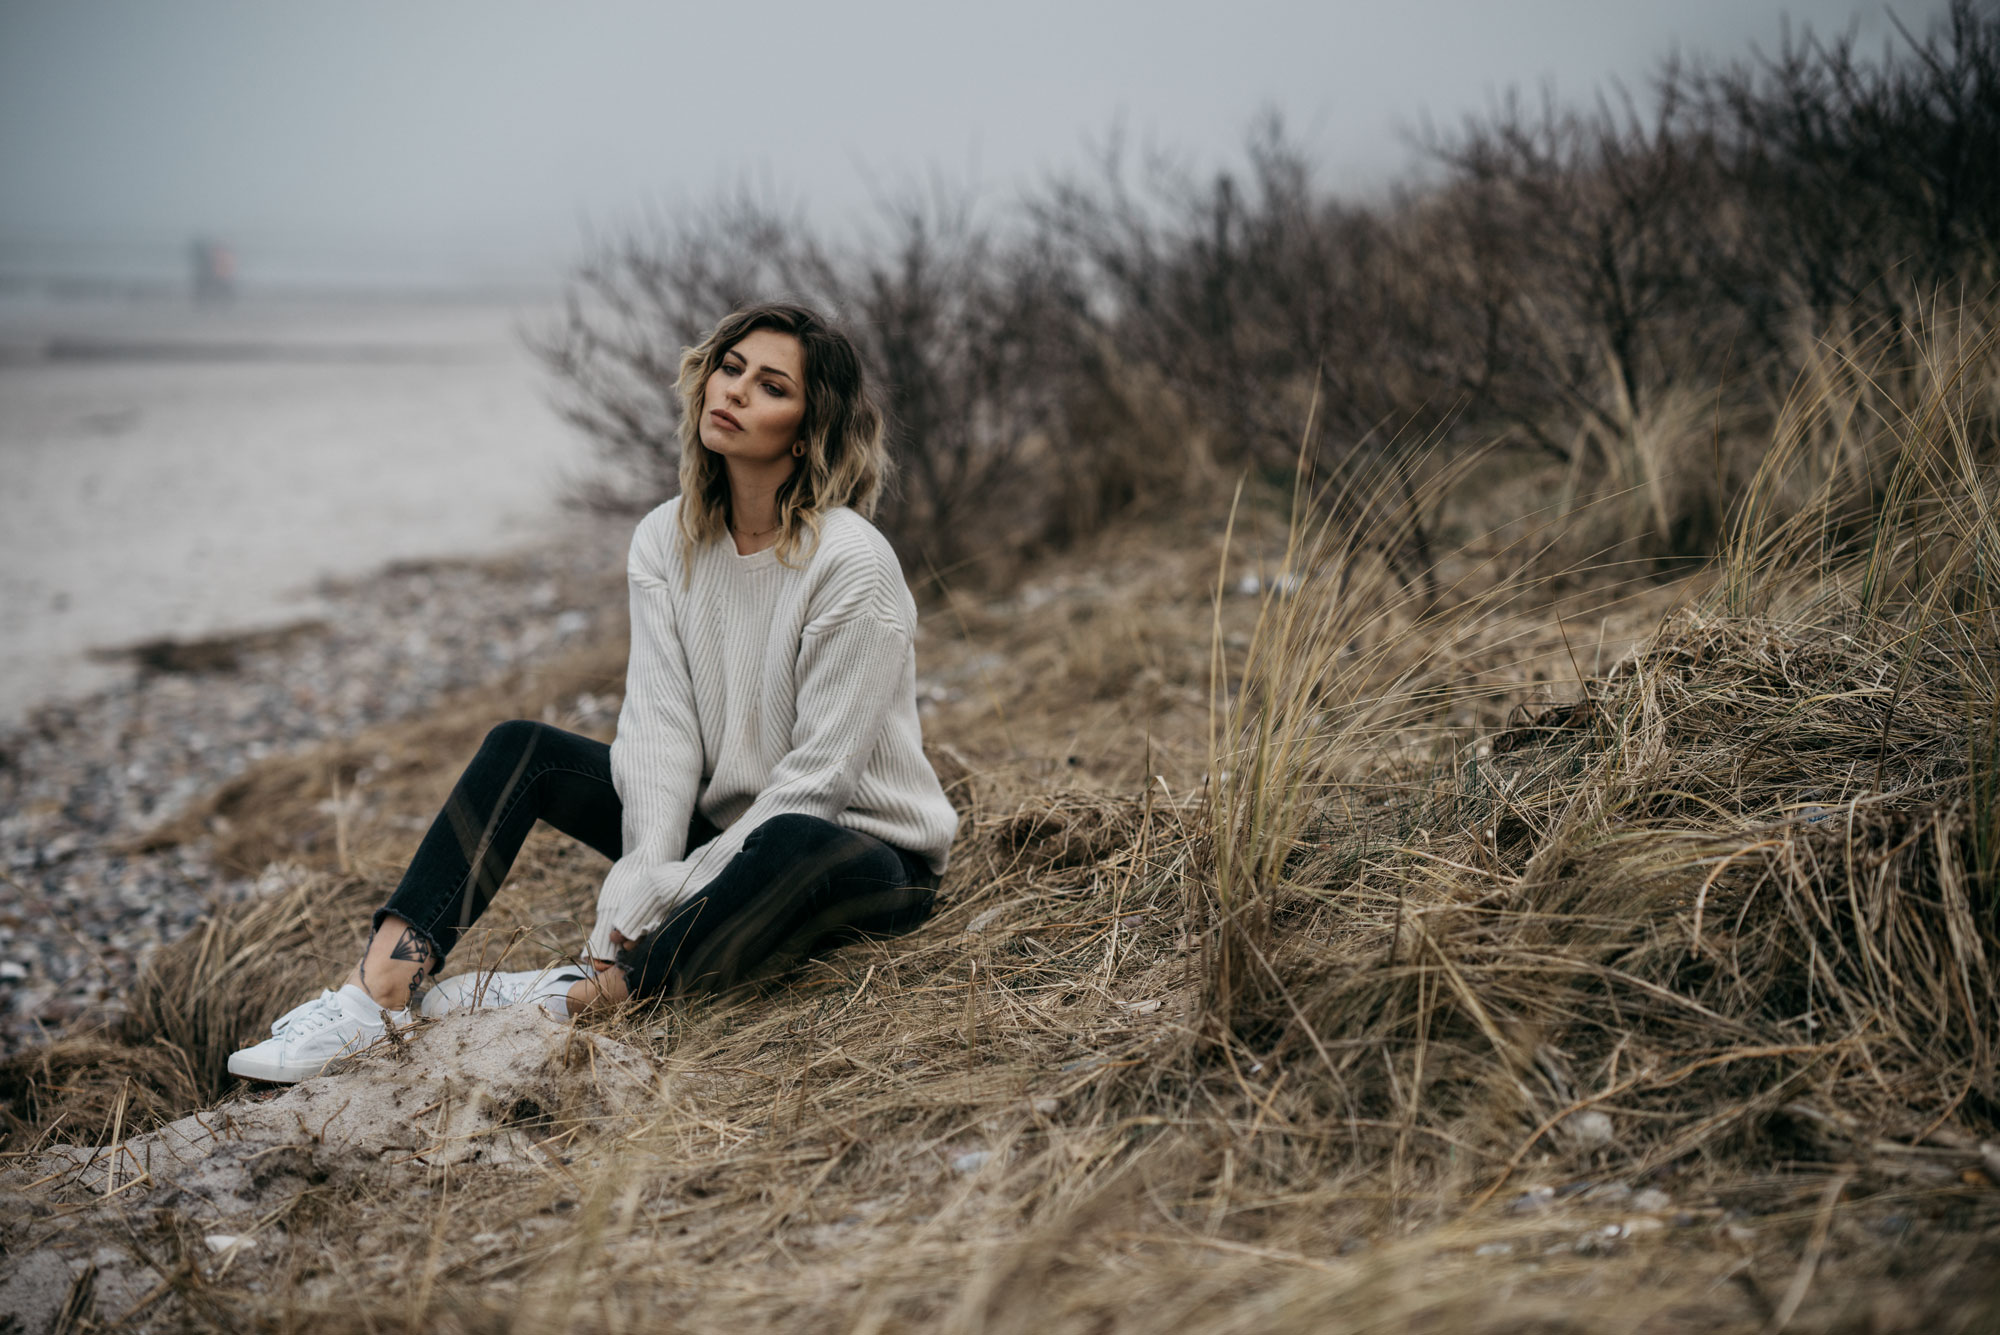 Baltic Sea Fashion Editorial | style: cool, effortless, simple, nature, emotional